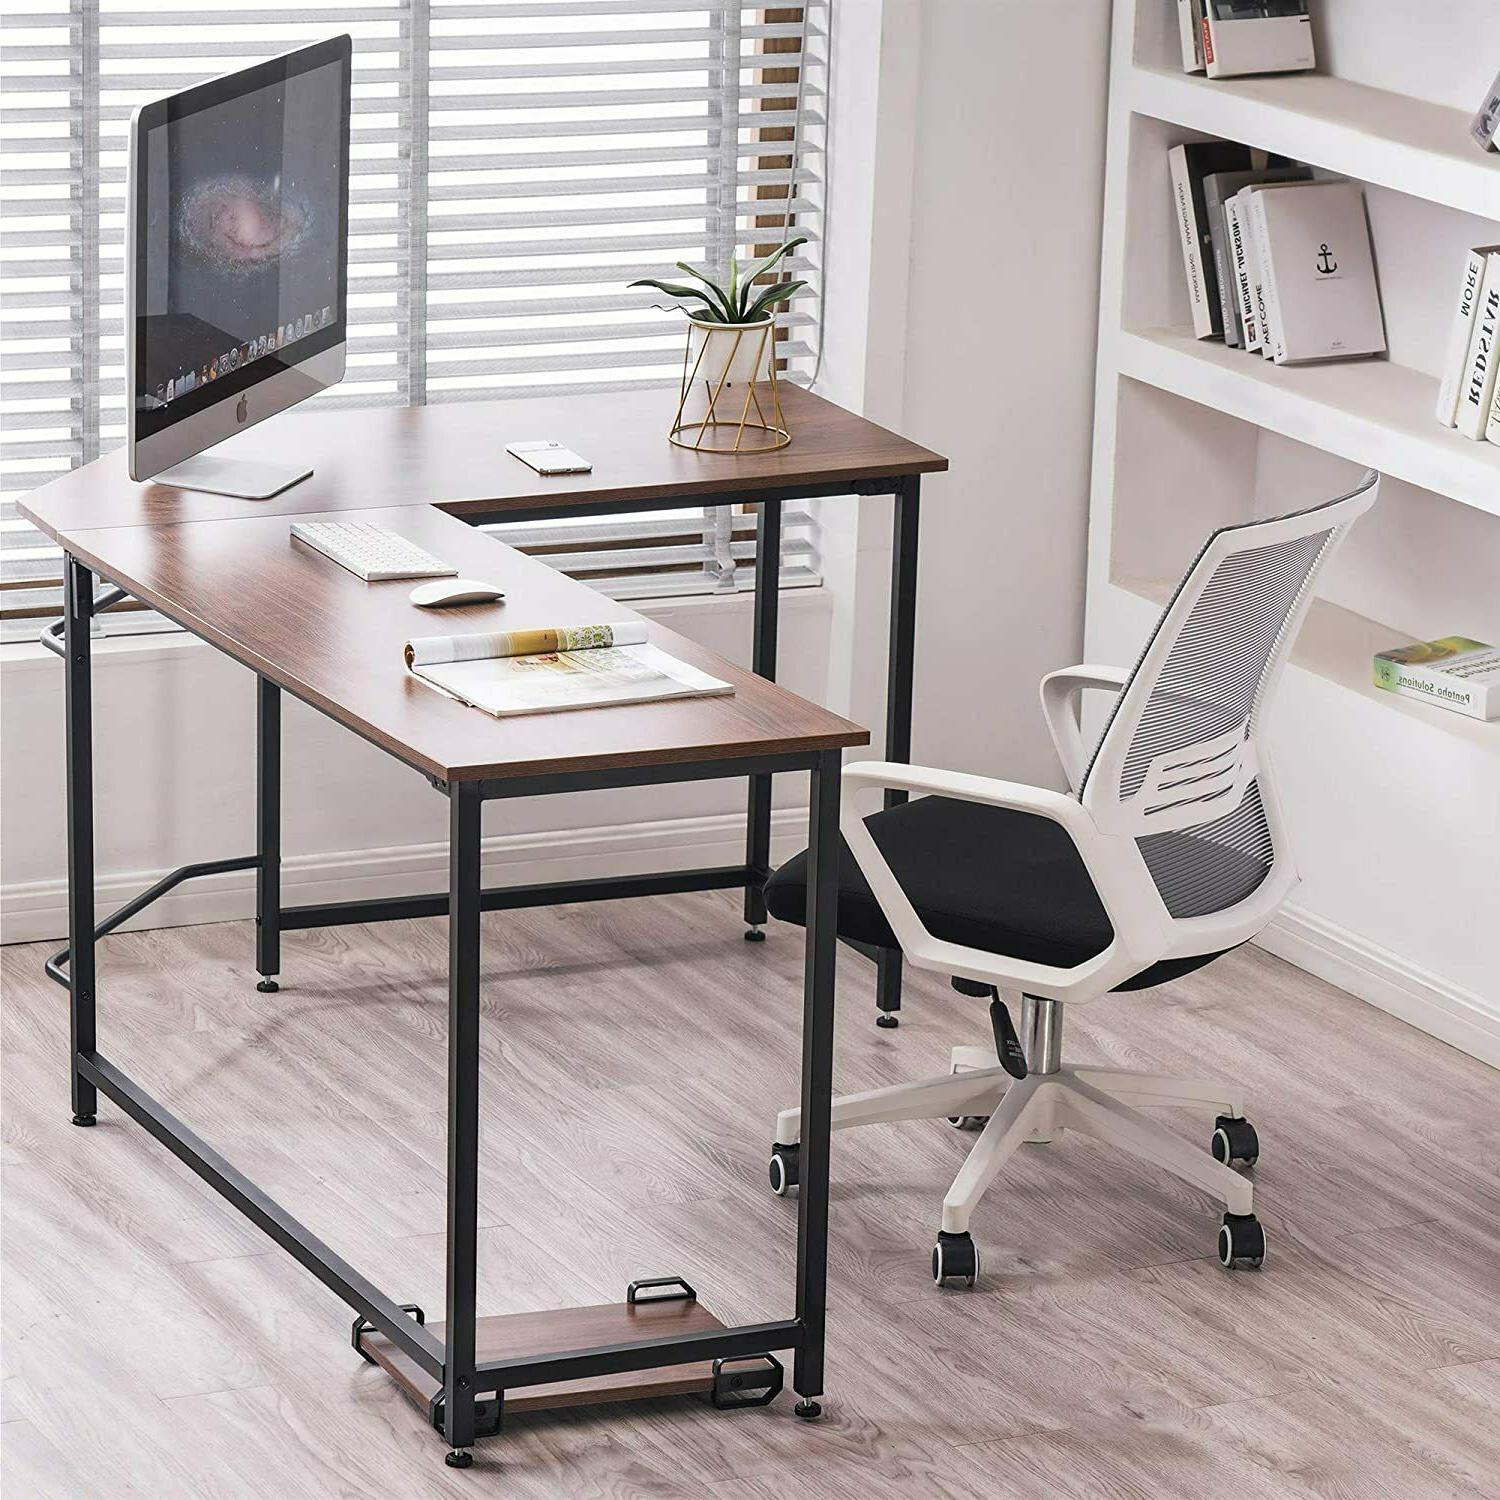 L-Shaped Desk Save Space Home